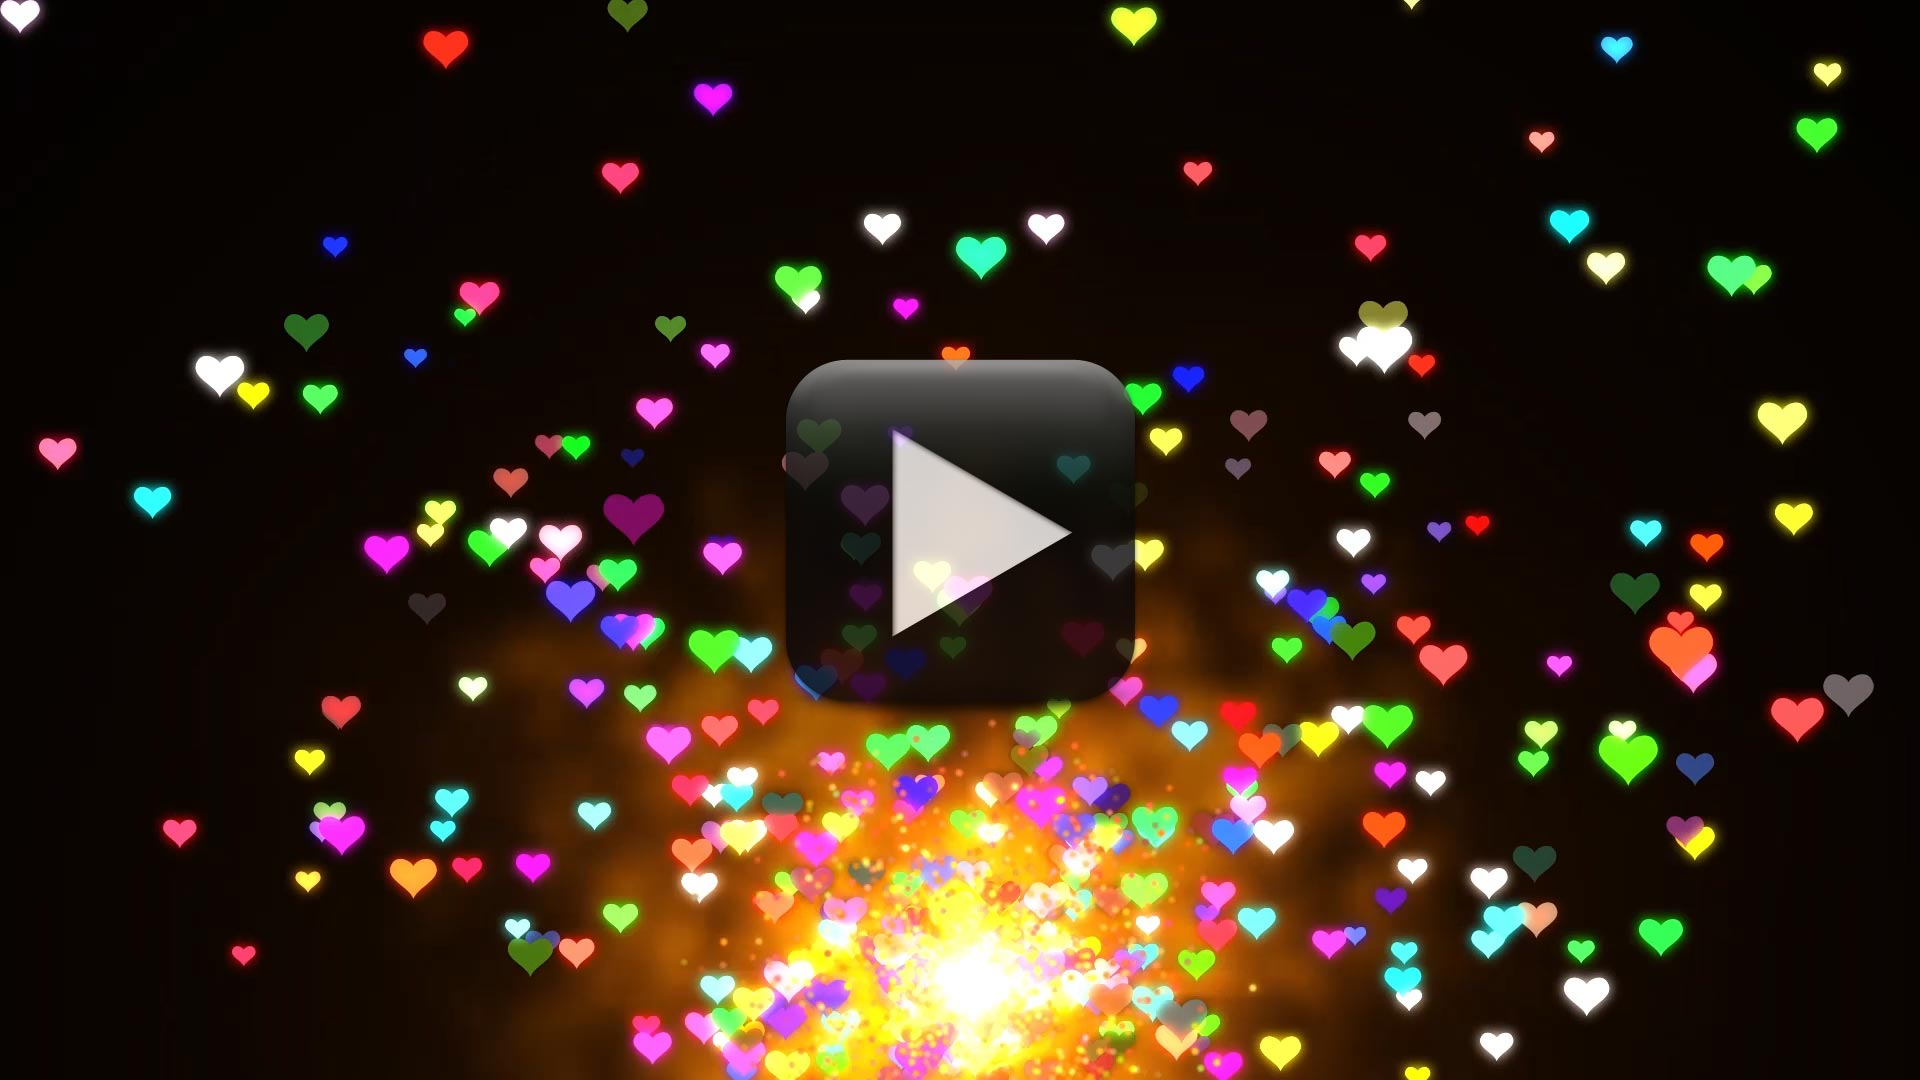 Love Heart Video Download All Design Creative